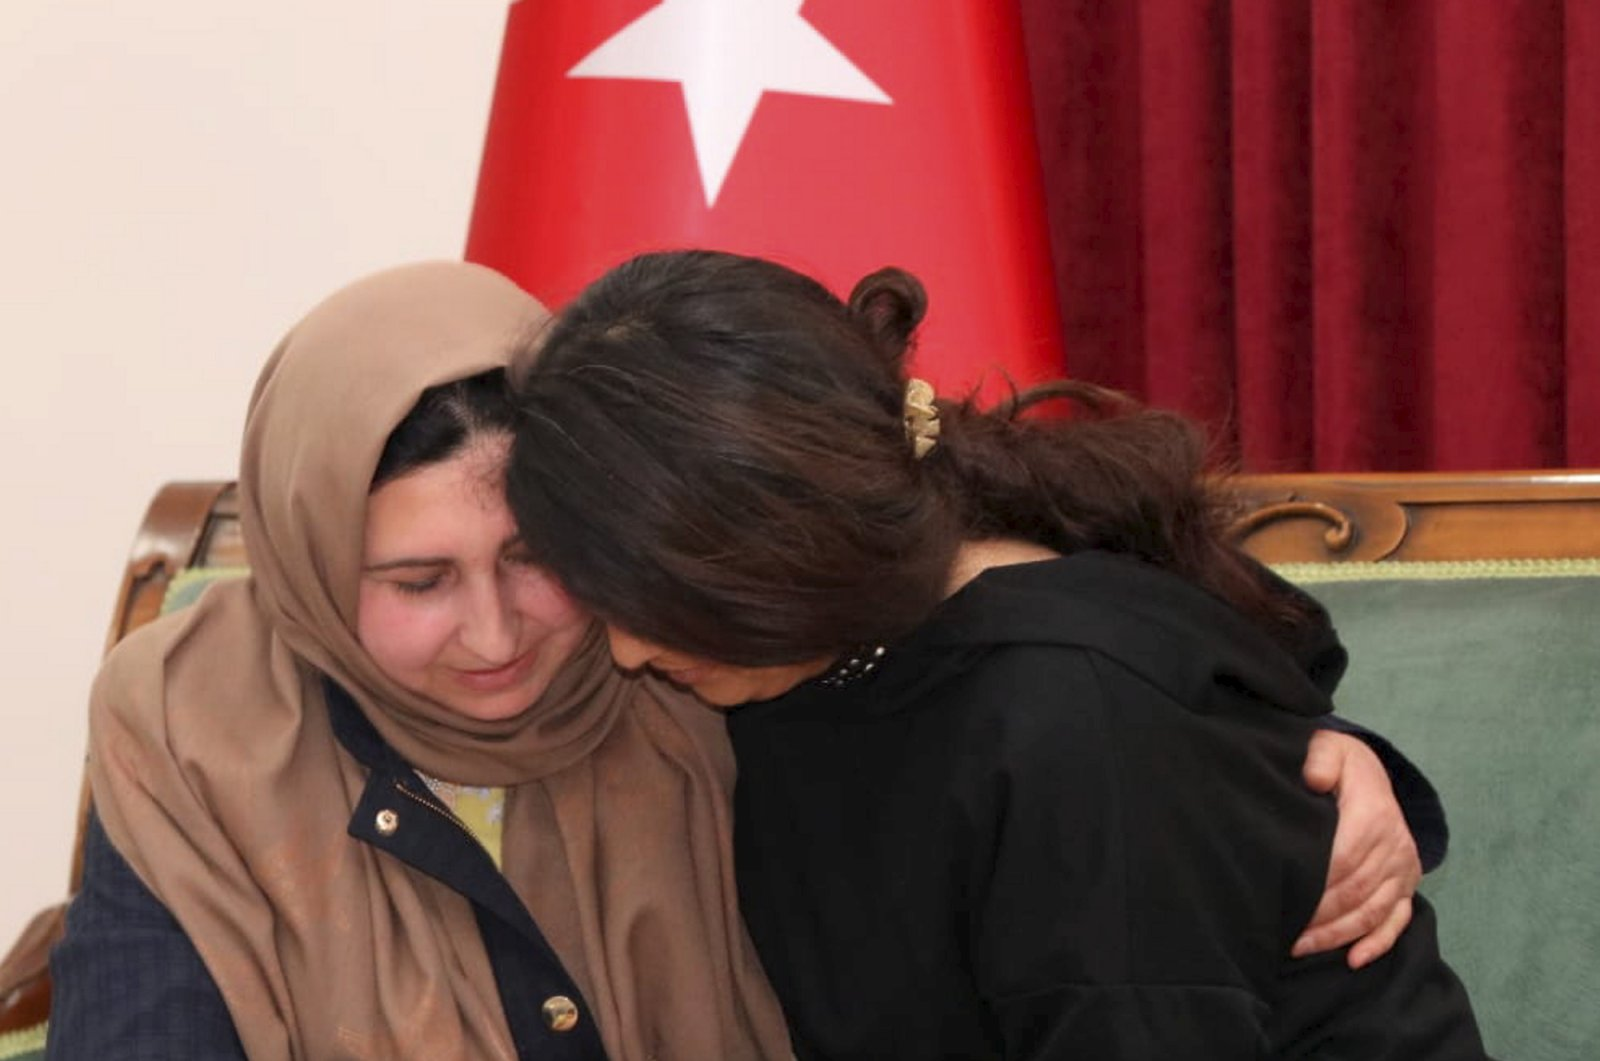 Tekoşin Acar, 27, surrendered thanks to the efforts of the security forces and met with her mother, Naime Dalmış, who she has not seen for six years, March 9, 2020.